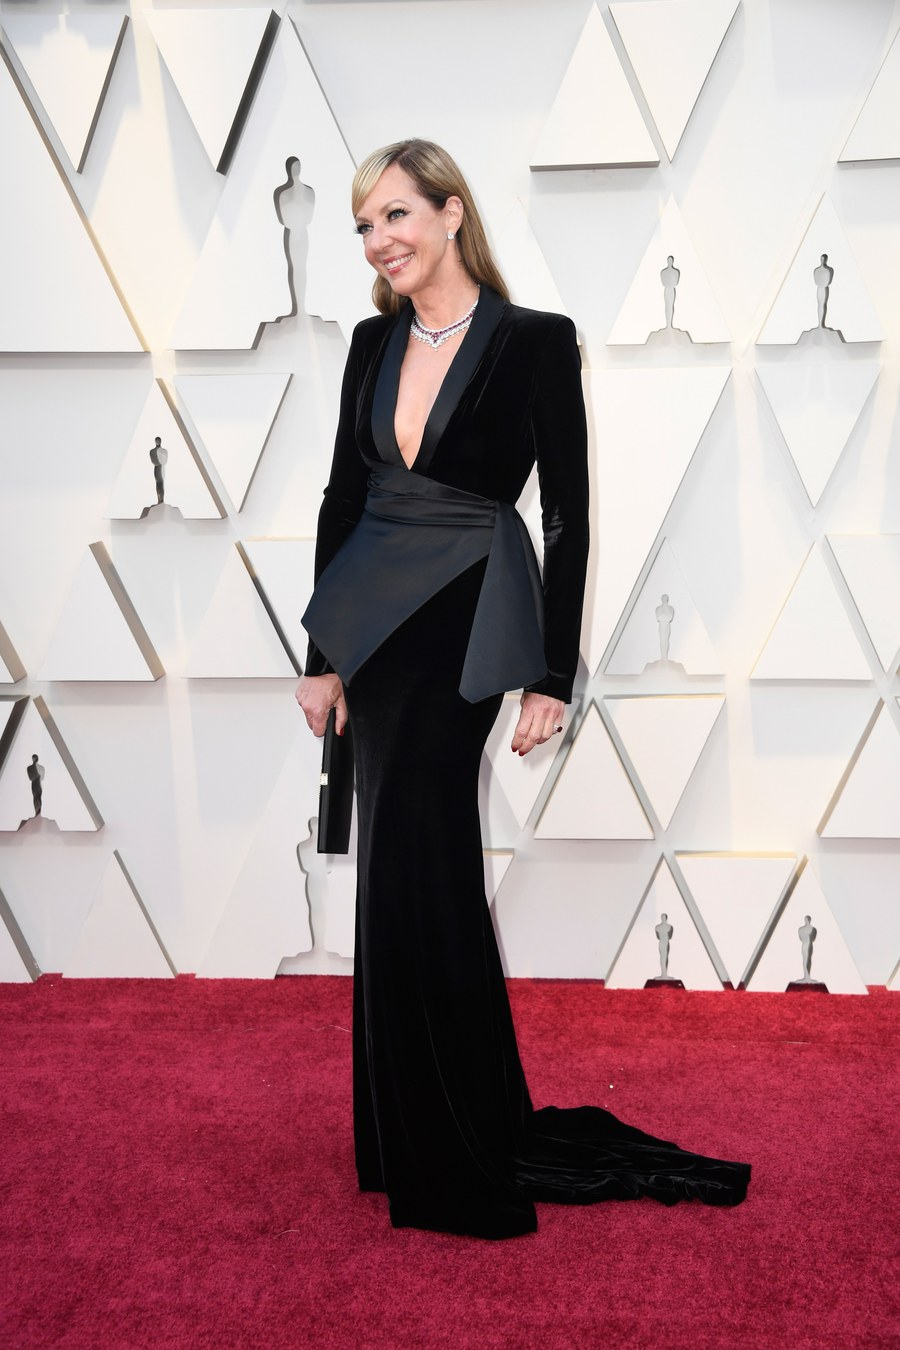 Allison Janney at the 91st Annual Academy Awards